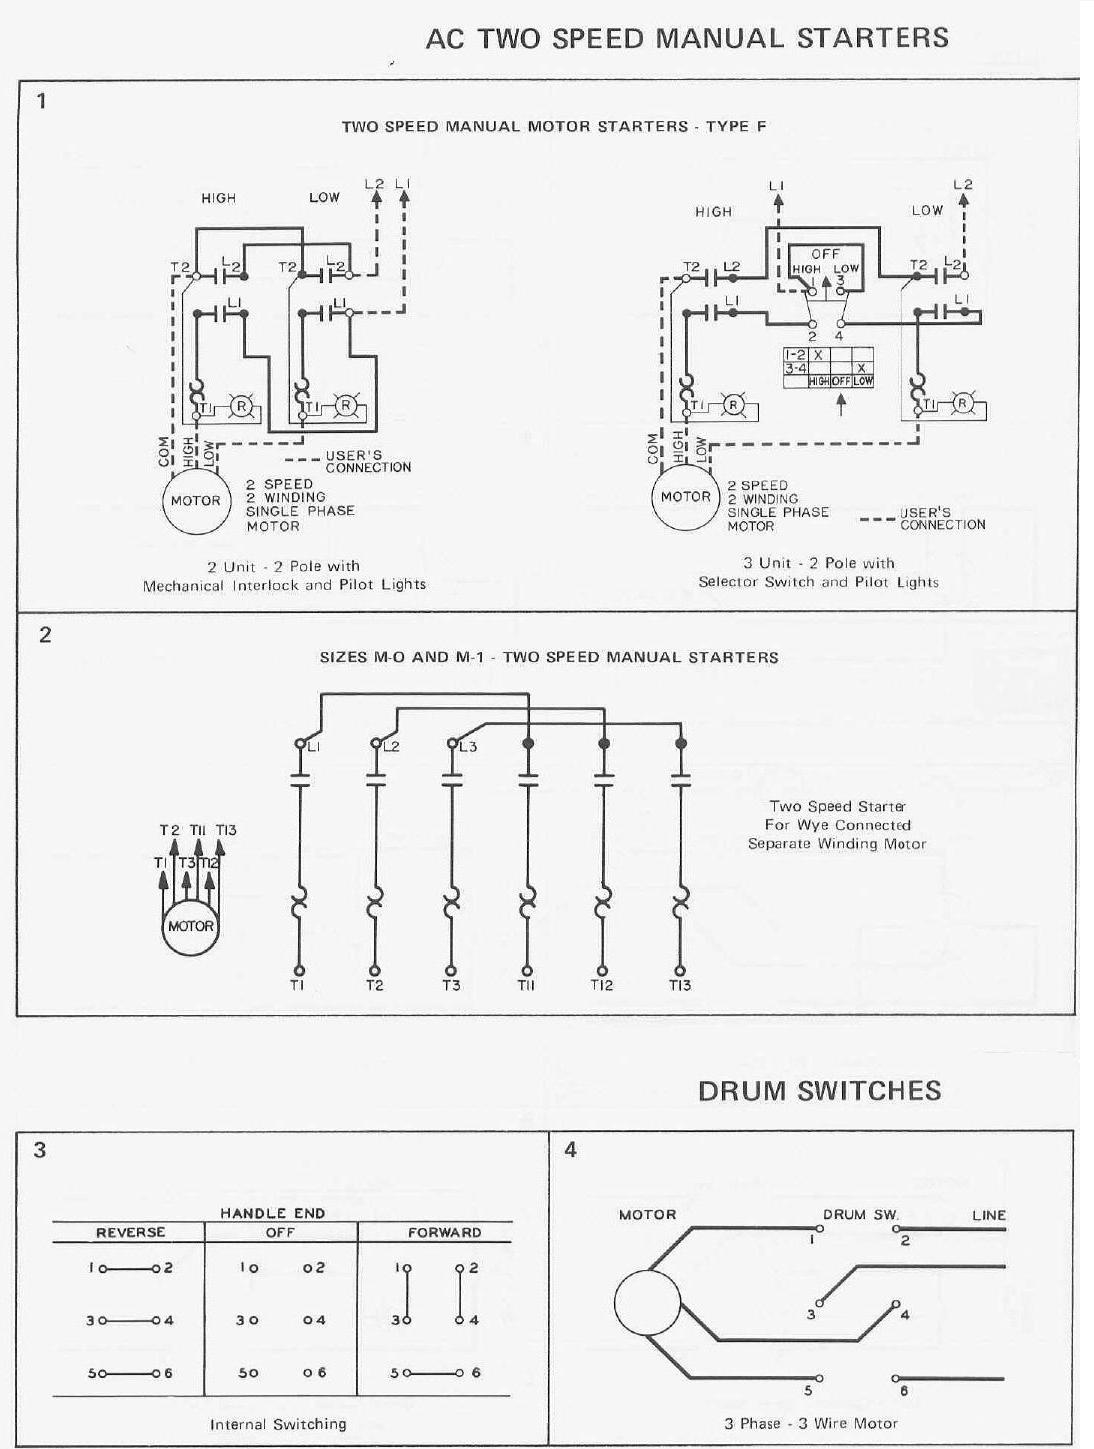 reversing split phase motor wiring diagram molecular orbital for cl2 3 drum switch impremedia